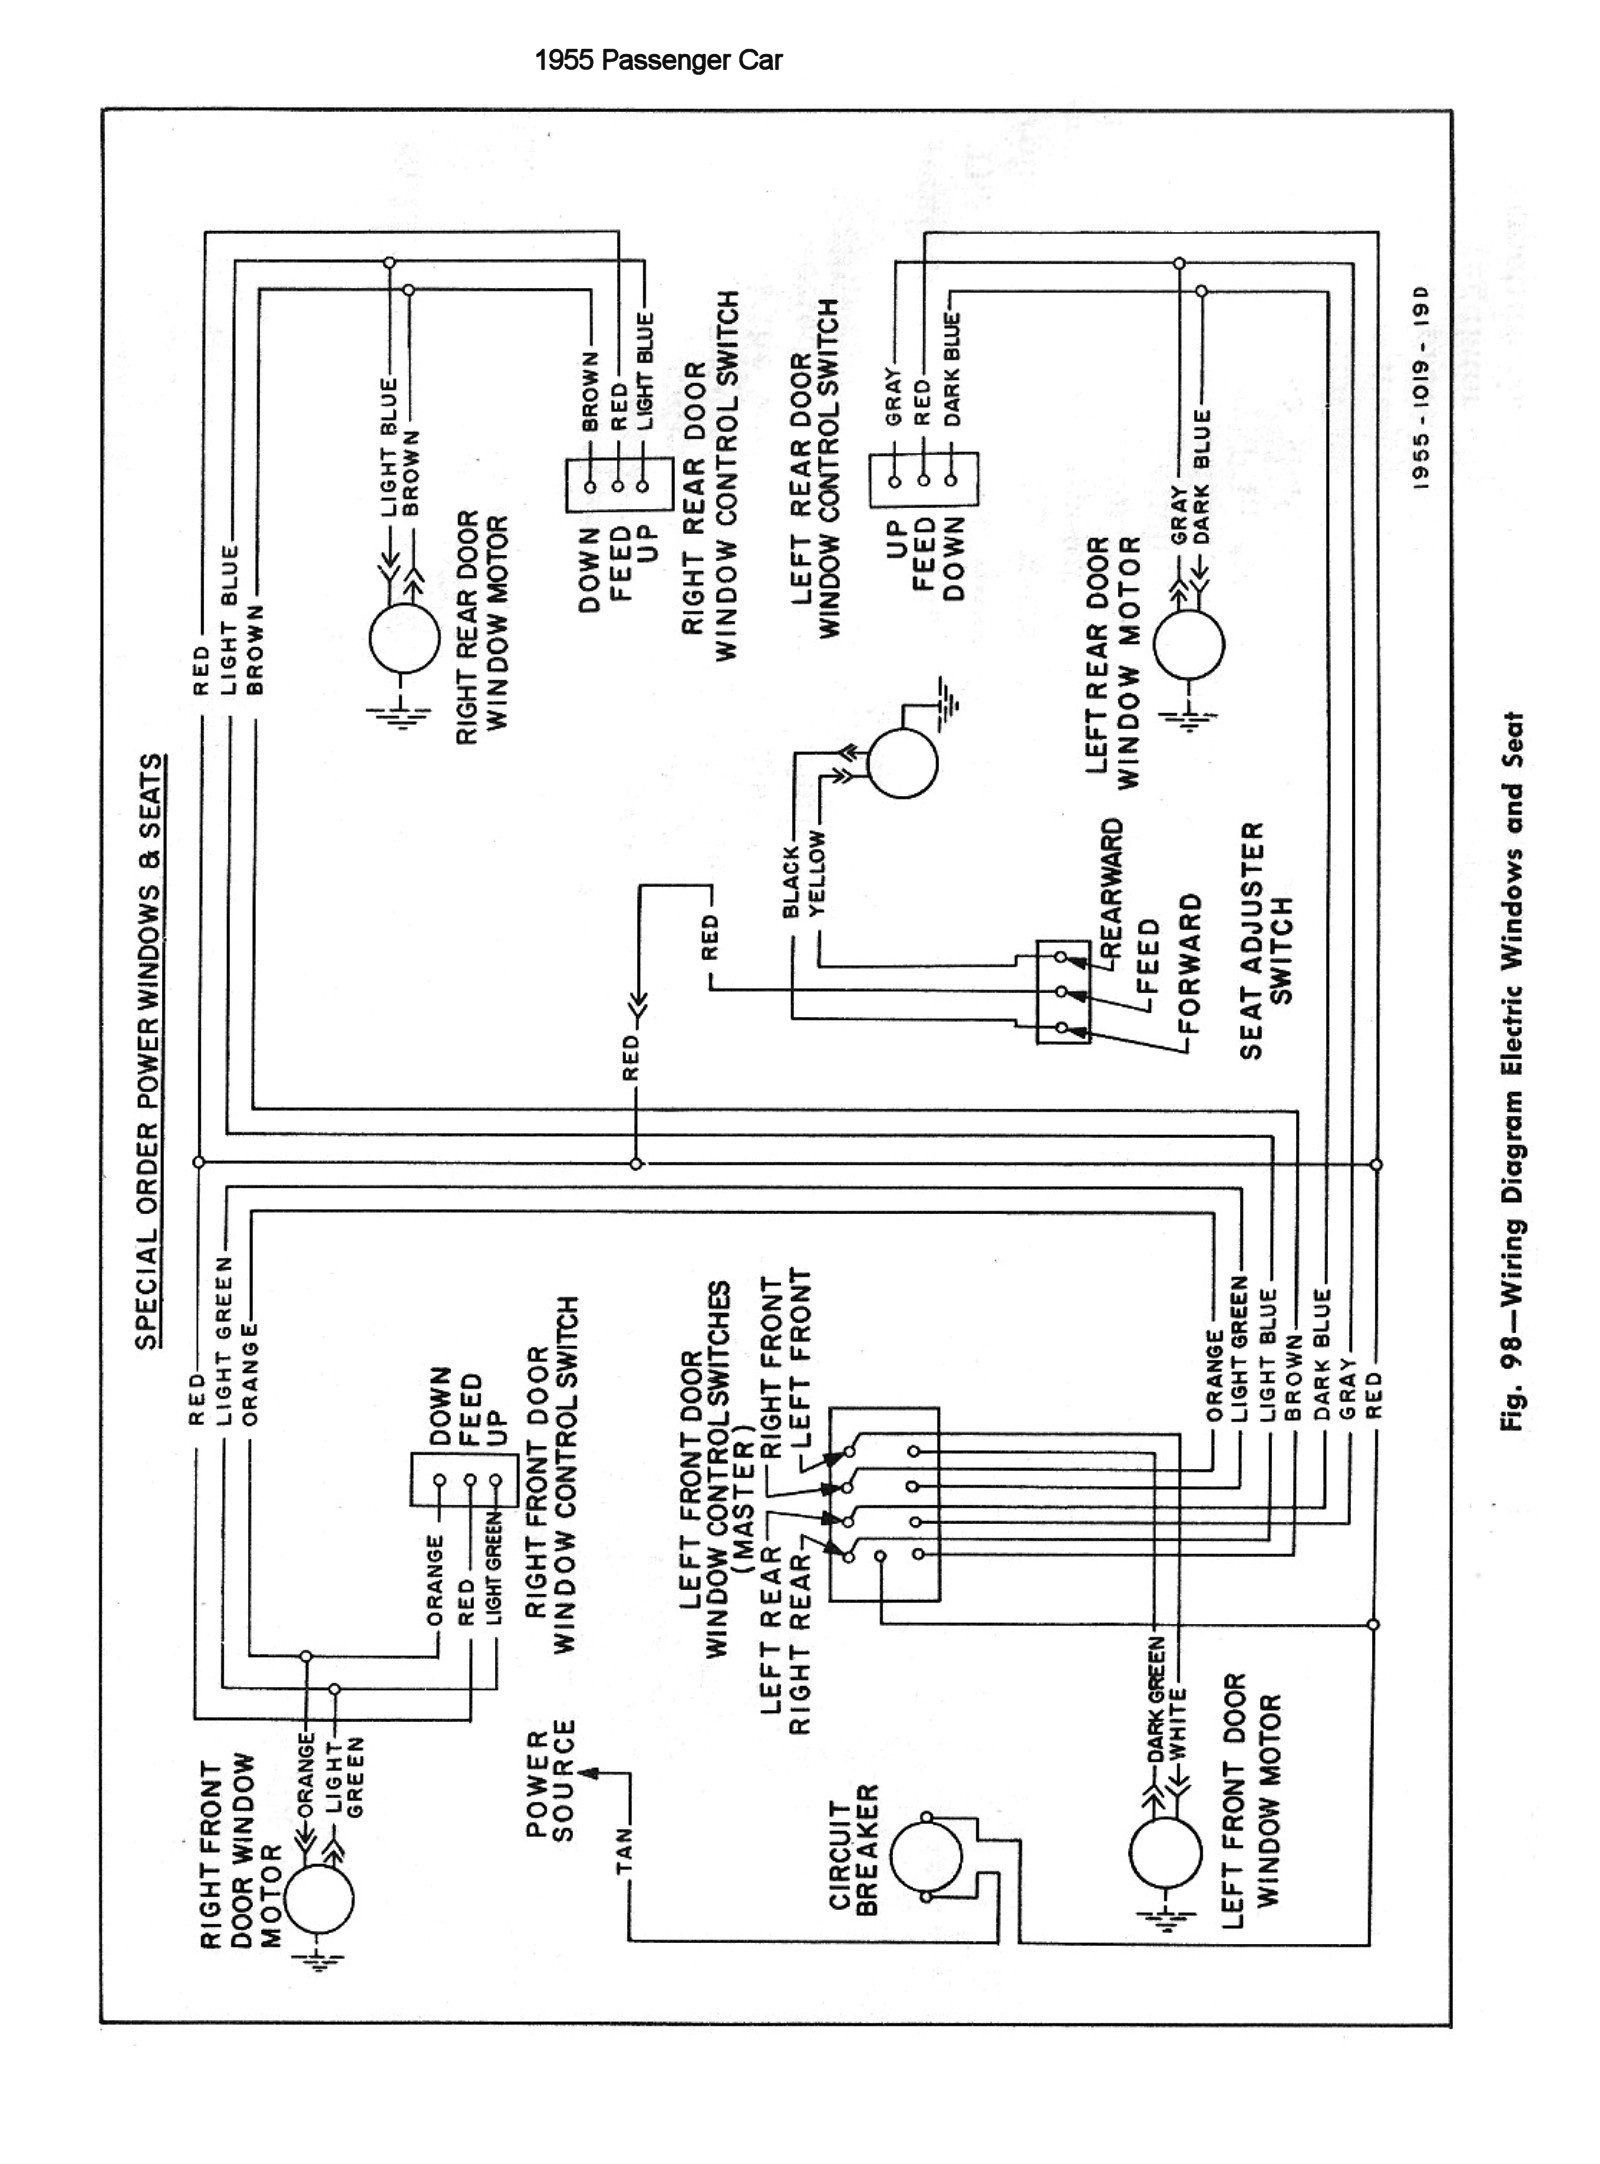 gm turn signal diagram wiring diagram general Kato Signal Wiring Diagram